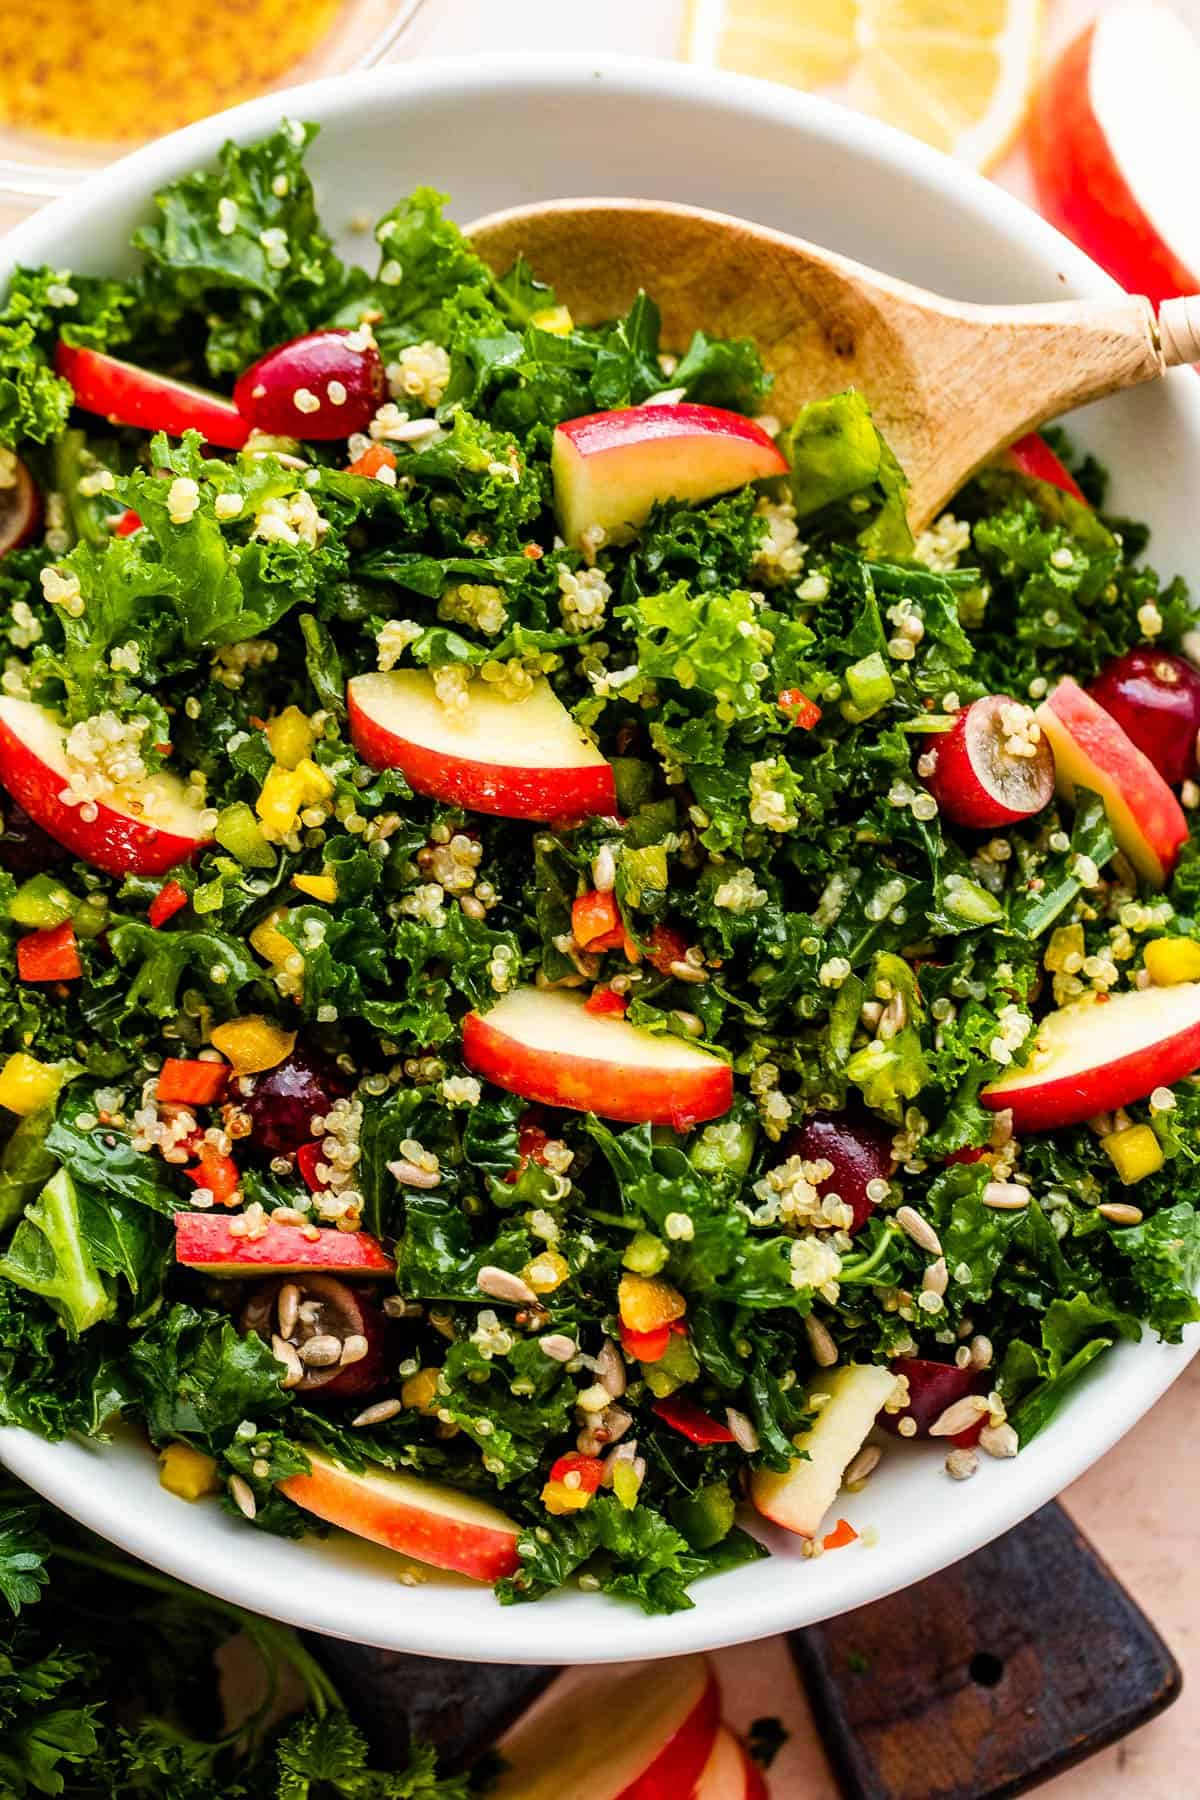 close up overhead shot of Crunchy Kale Quinoa Salad studded with apple slices, halved grapes, sunflower seeds, and bell peppers.